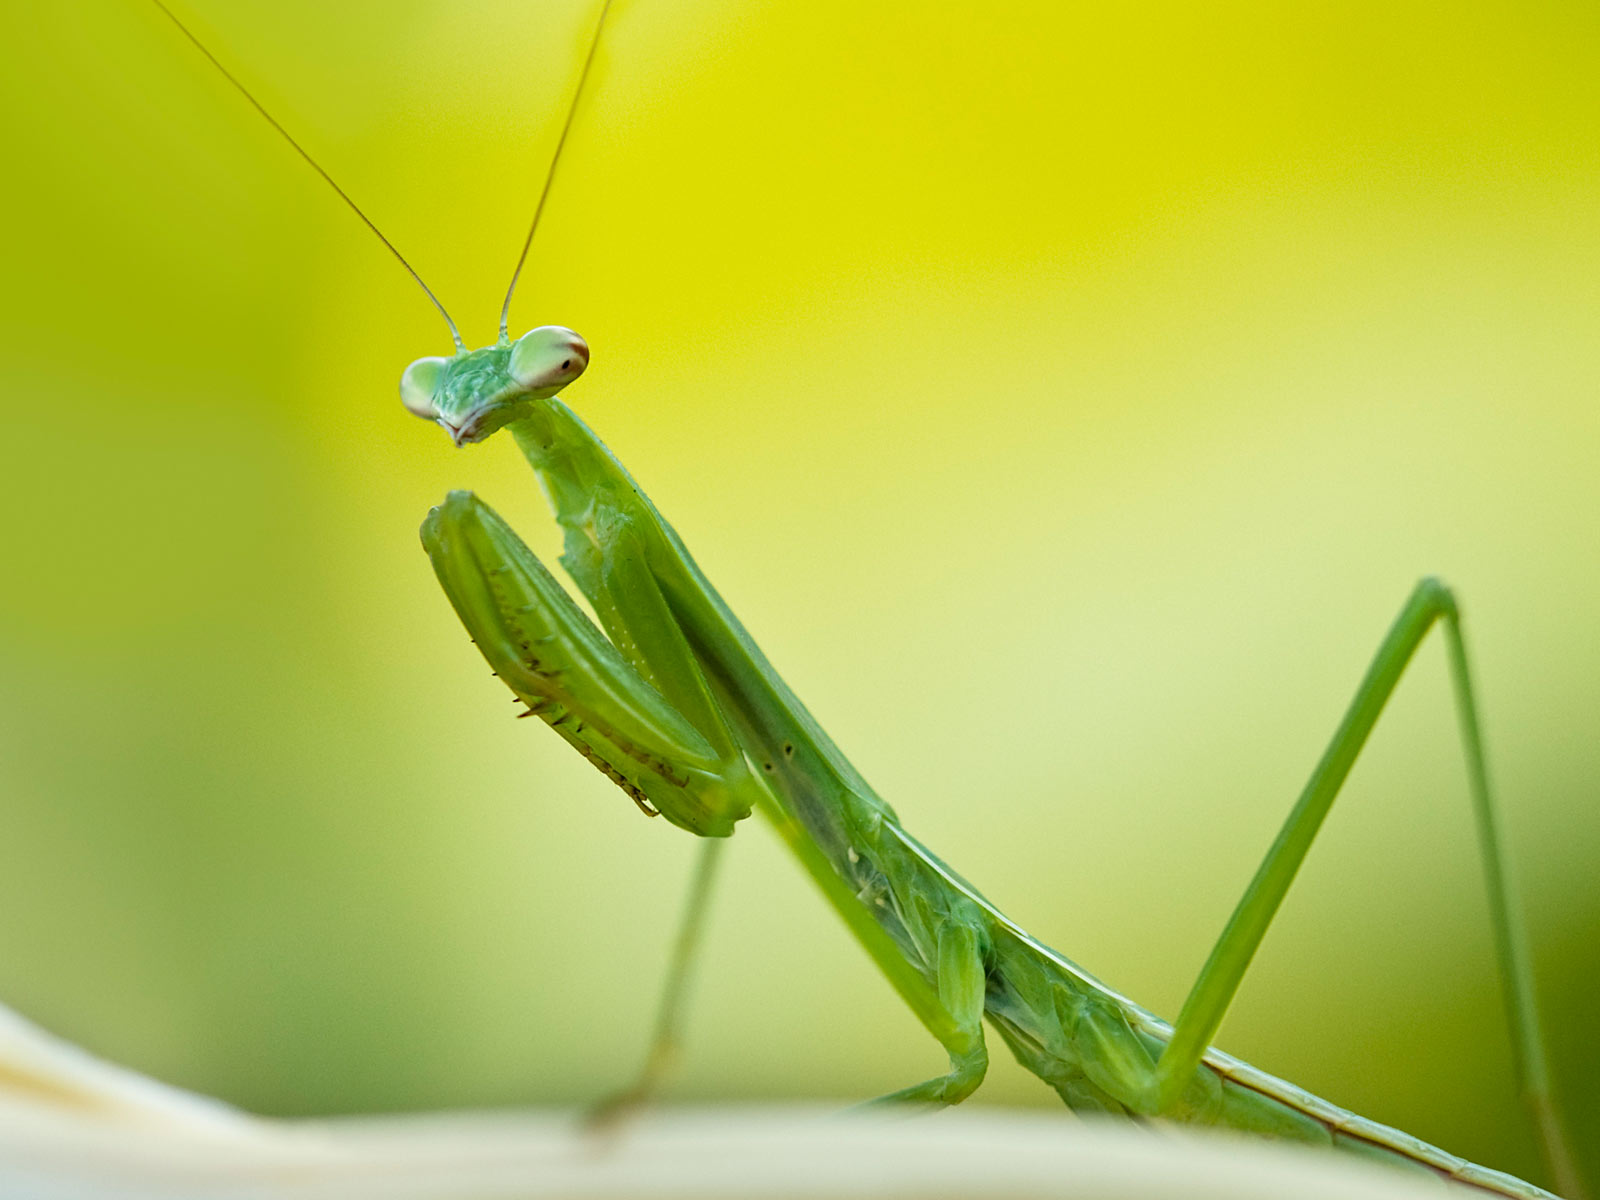 Desktop Wallpaper · Gallery · Nature Praying mantis